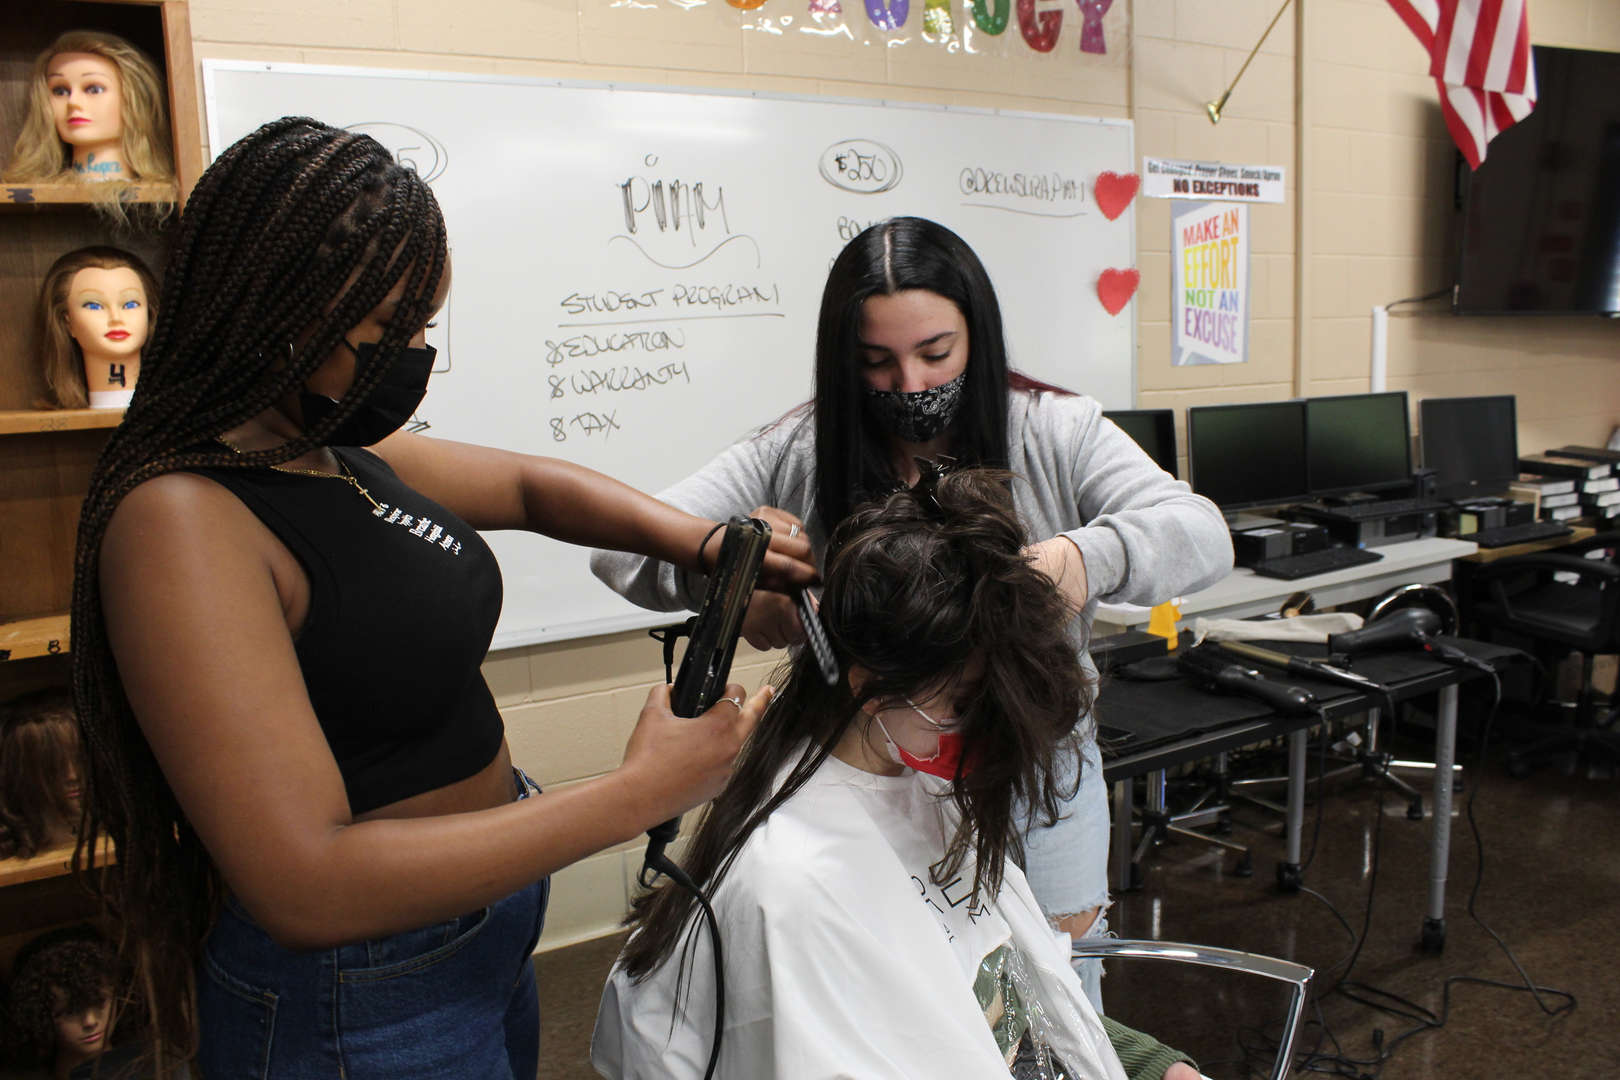 Girl uses flatiron tool to straighten out another girl's hair